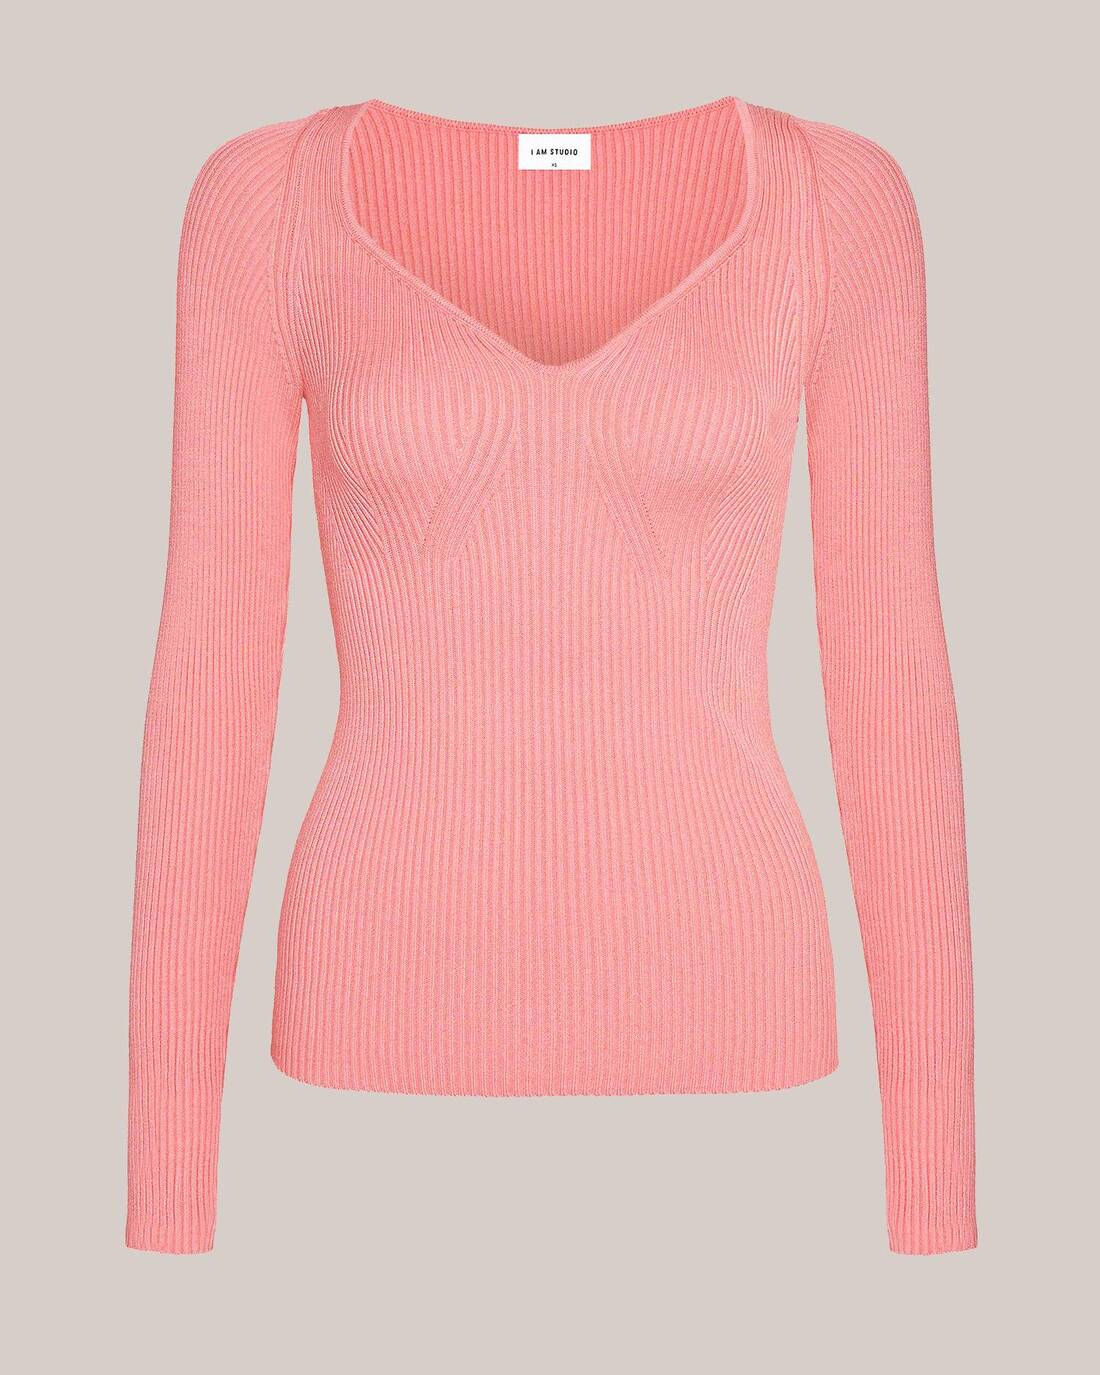 Ribbed sweater with heart neckline